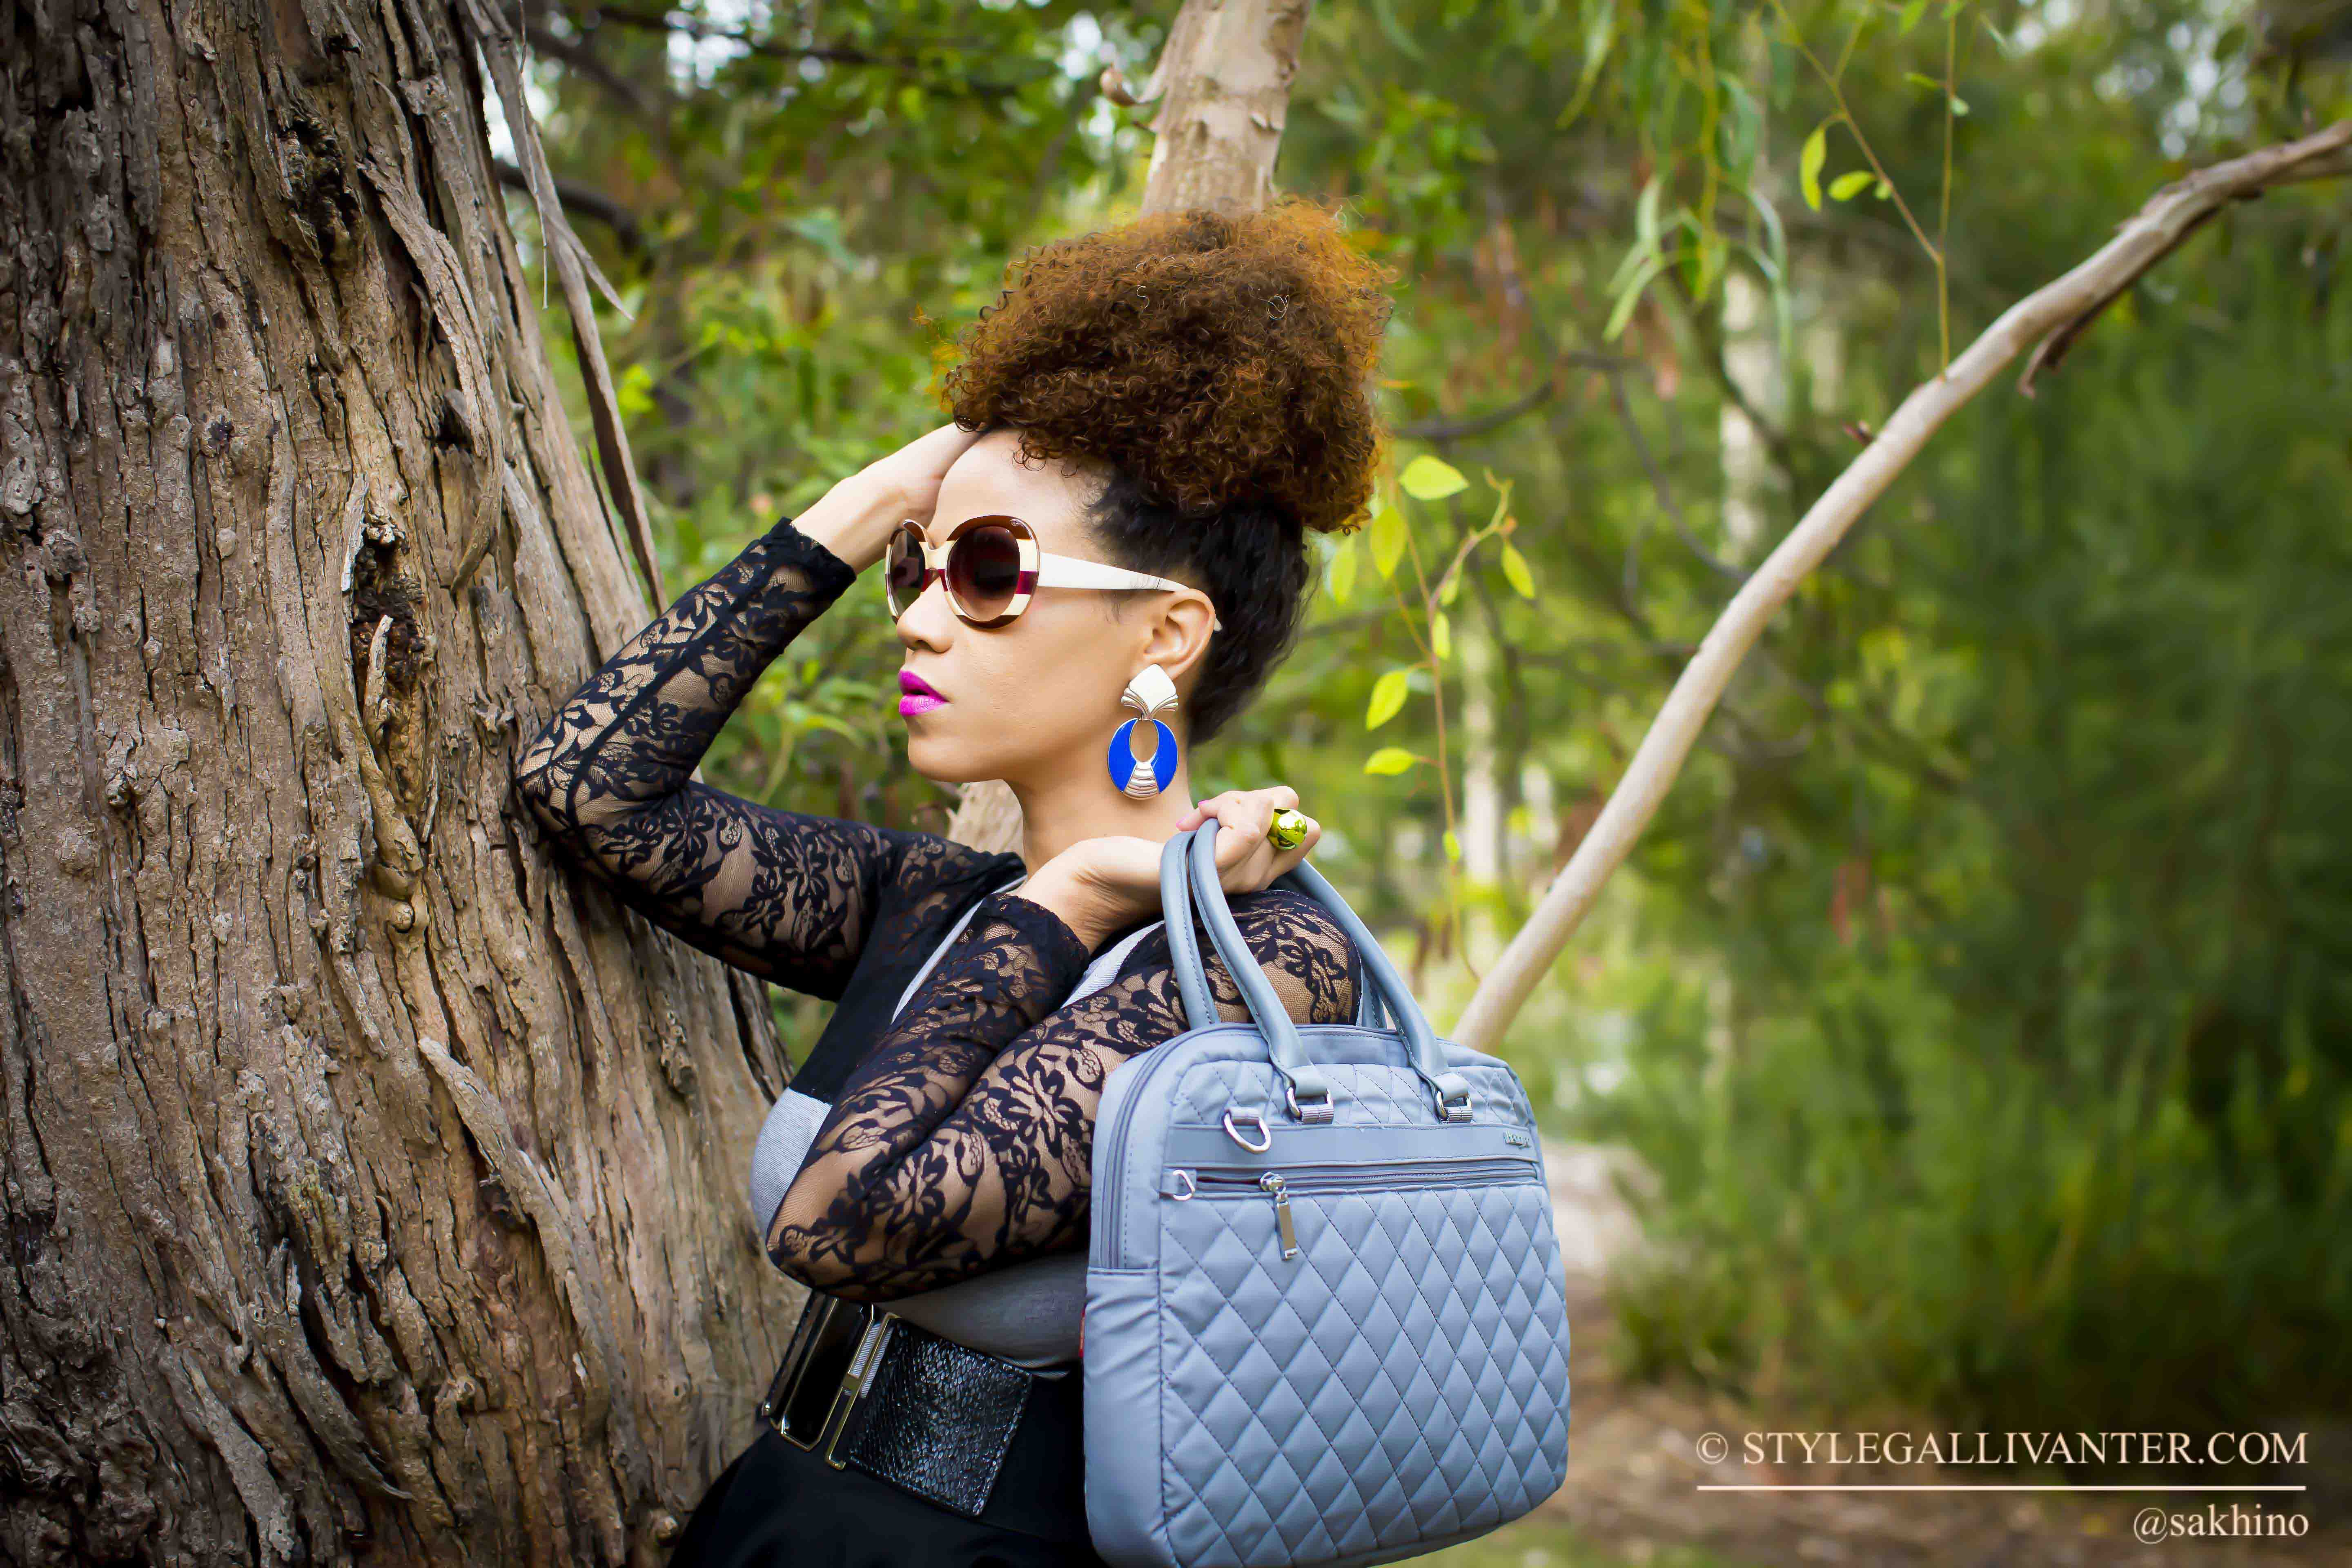 mirandaSAKHINO-copyright-2015_not-to-be-used-without-permission_manolo-blahnik_hedgren-bags-2015_grey-hedgren_top-fashion-blogs-melbourne-2015_blogger-turned-designer-17